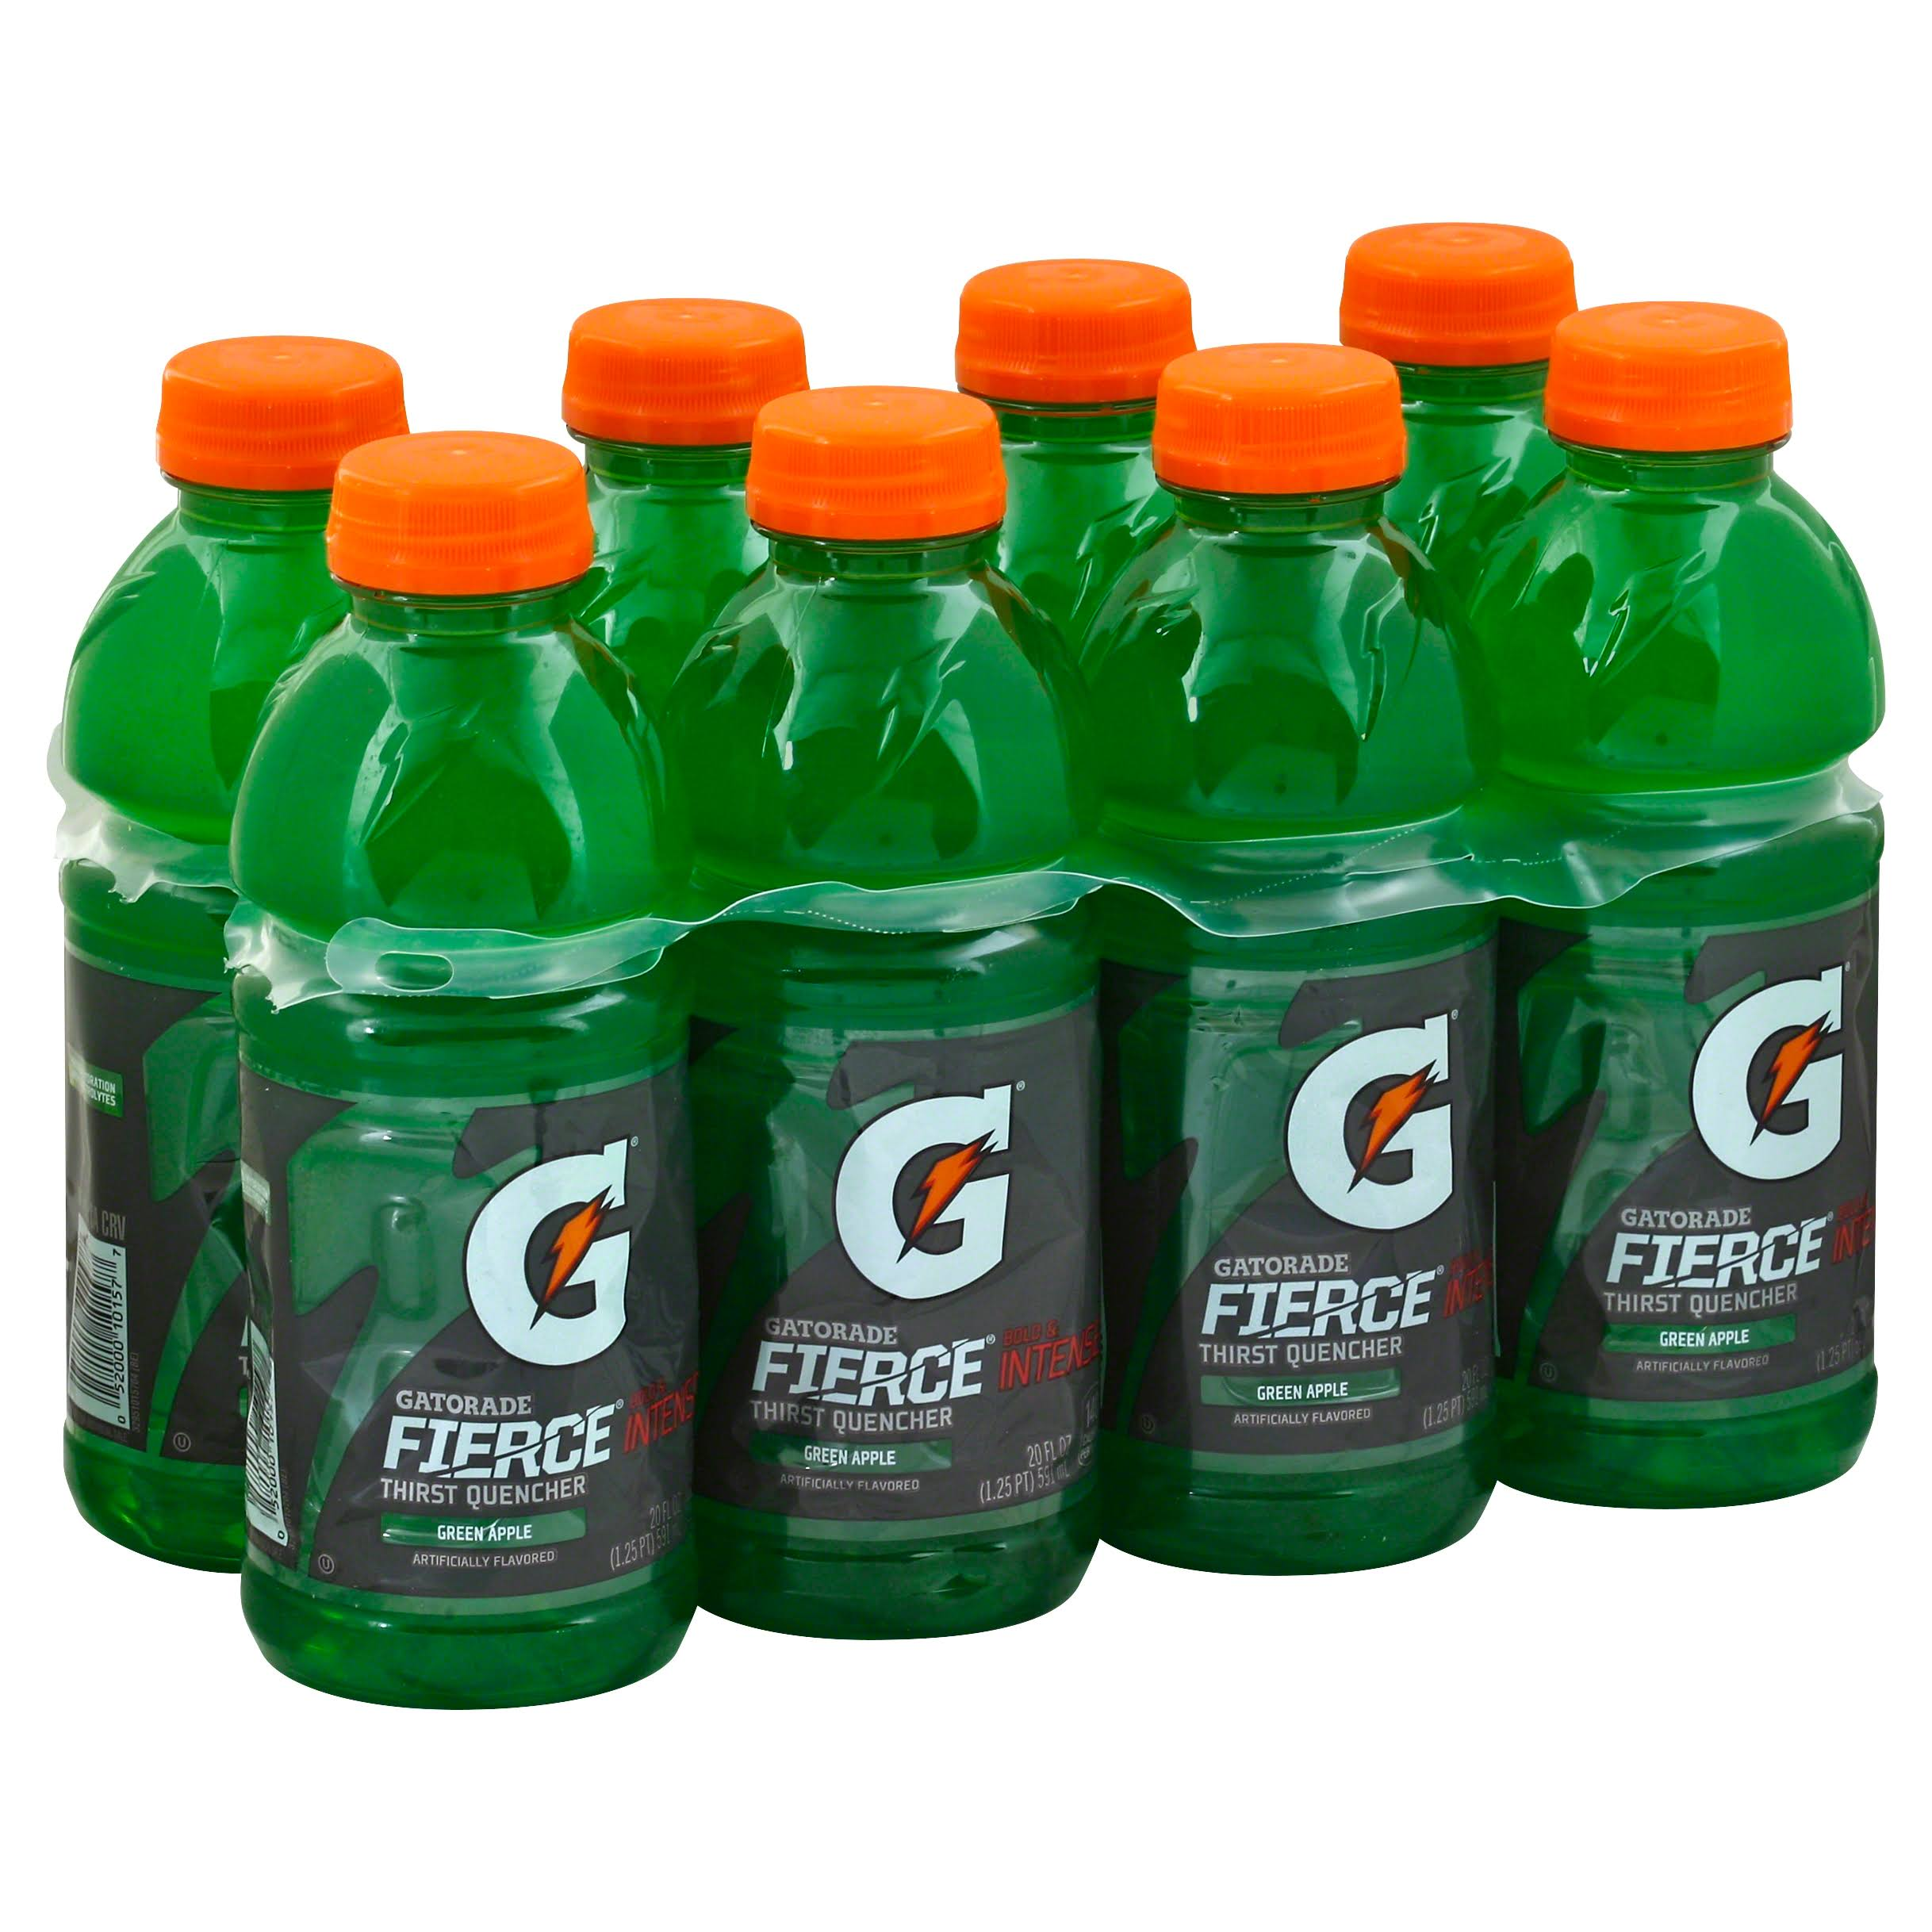 Gatorade Fierce Green Apple Thirst Quencher - 20 oz